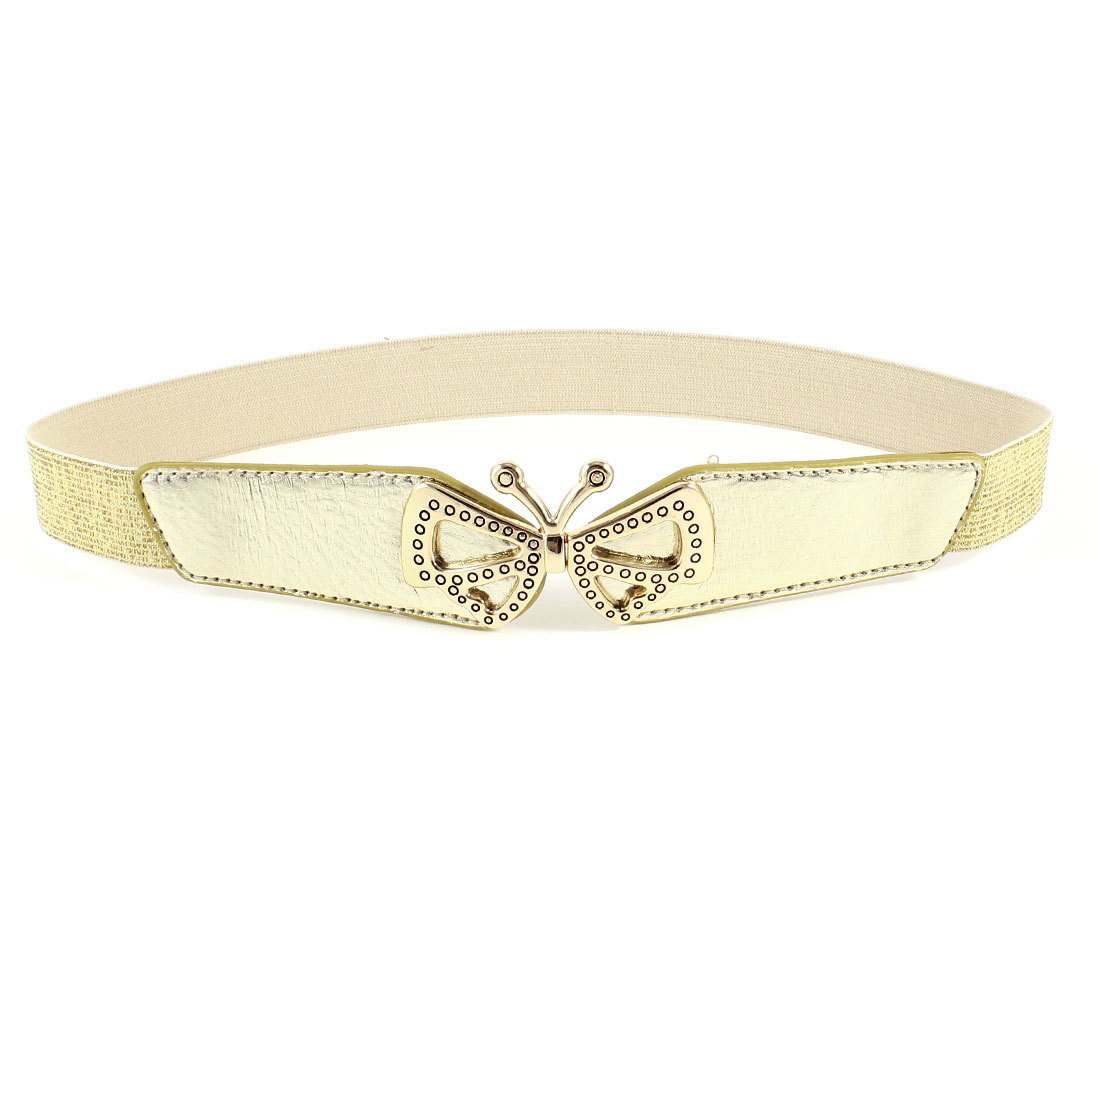 Ladies Butterfly Shaped Metal Interlocking Buckle Stretchy Waist Belt Gold Tone